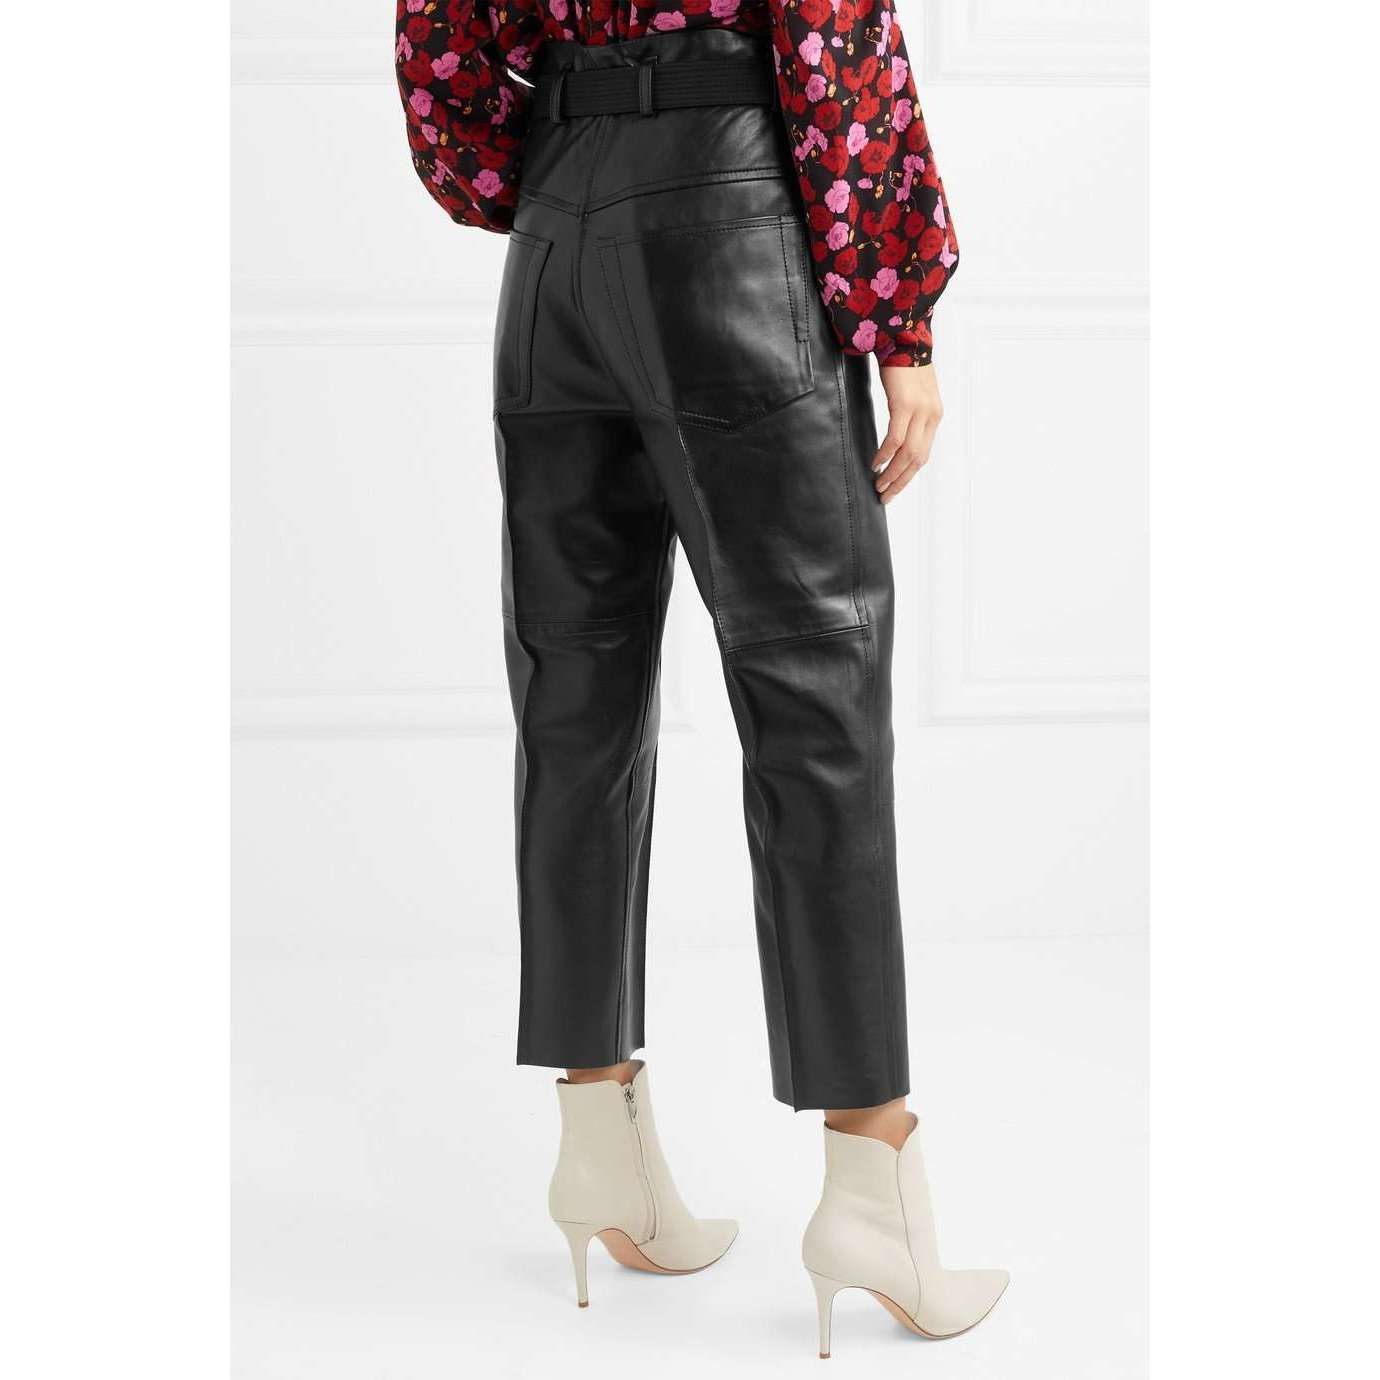 MUHATTA - CROPPED LEATHER WIDE LEG PANTS